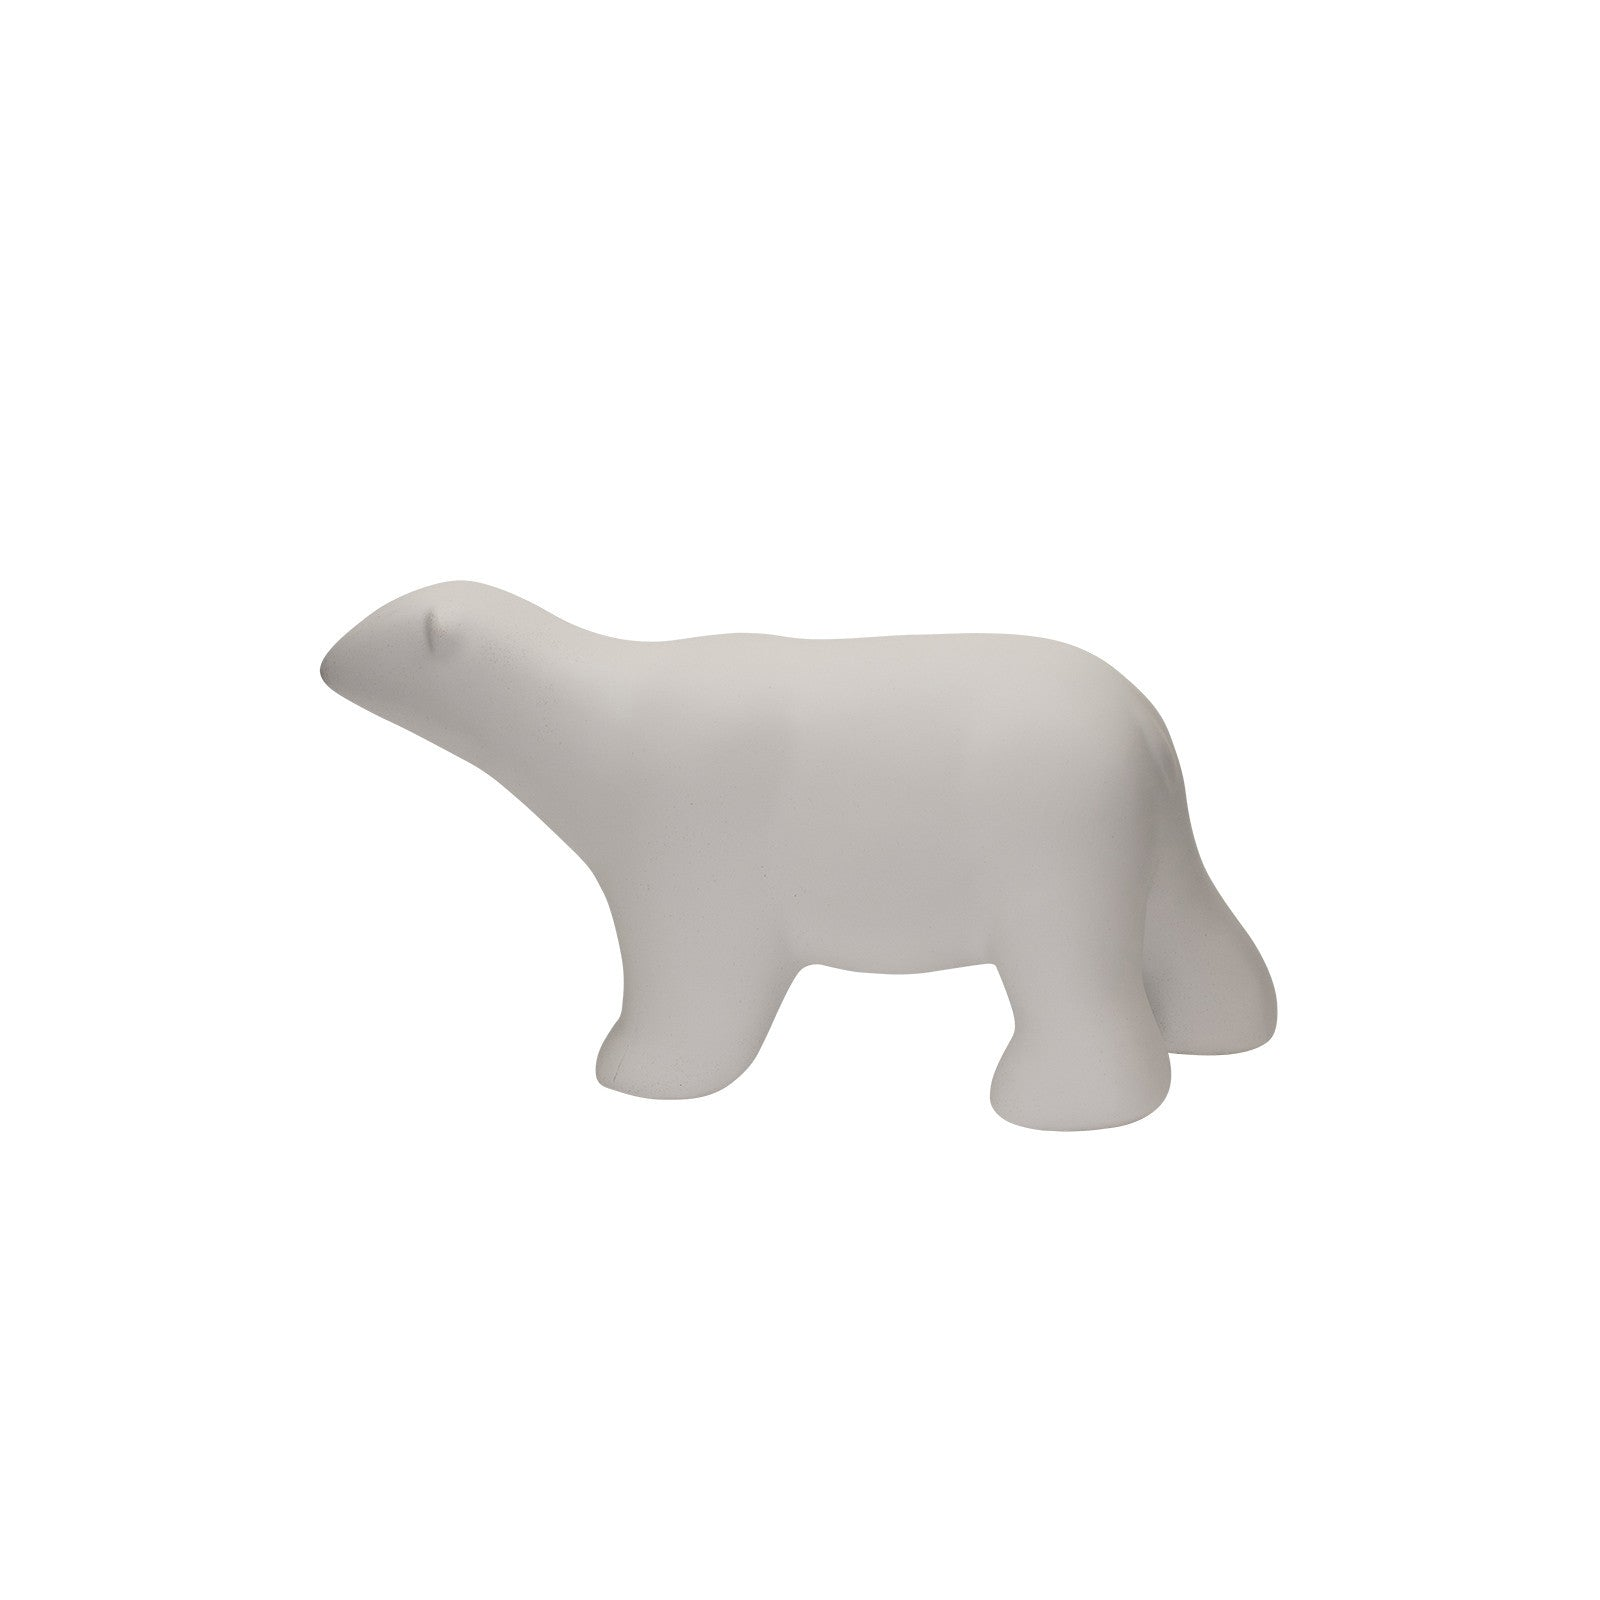 White Polar Bear Ornament Statue - Small